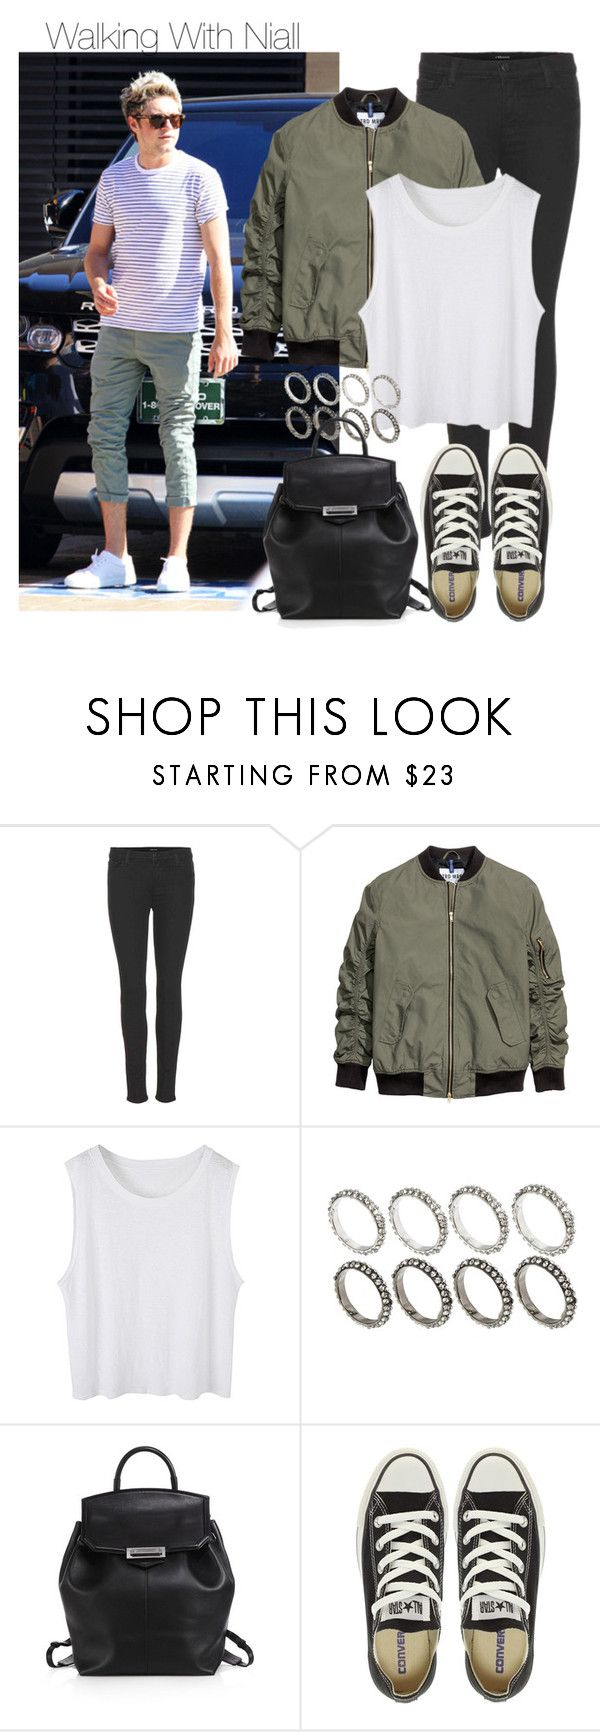 """""""Walking With Niall"""" by onedirectiondress ❤ liked on Polyvore featuring J Brand, ASOS, Alexander Wang and Converse"""